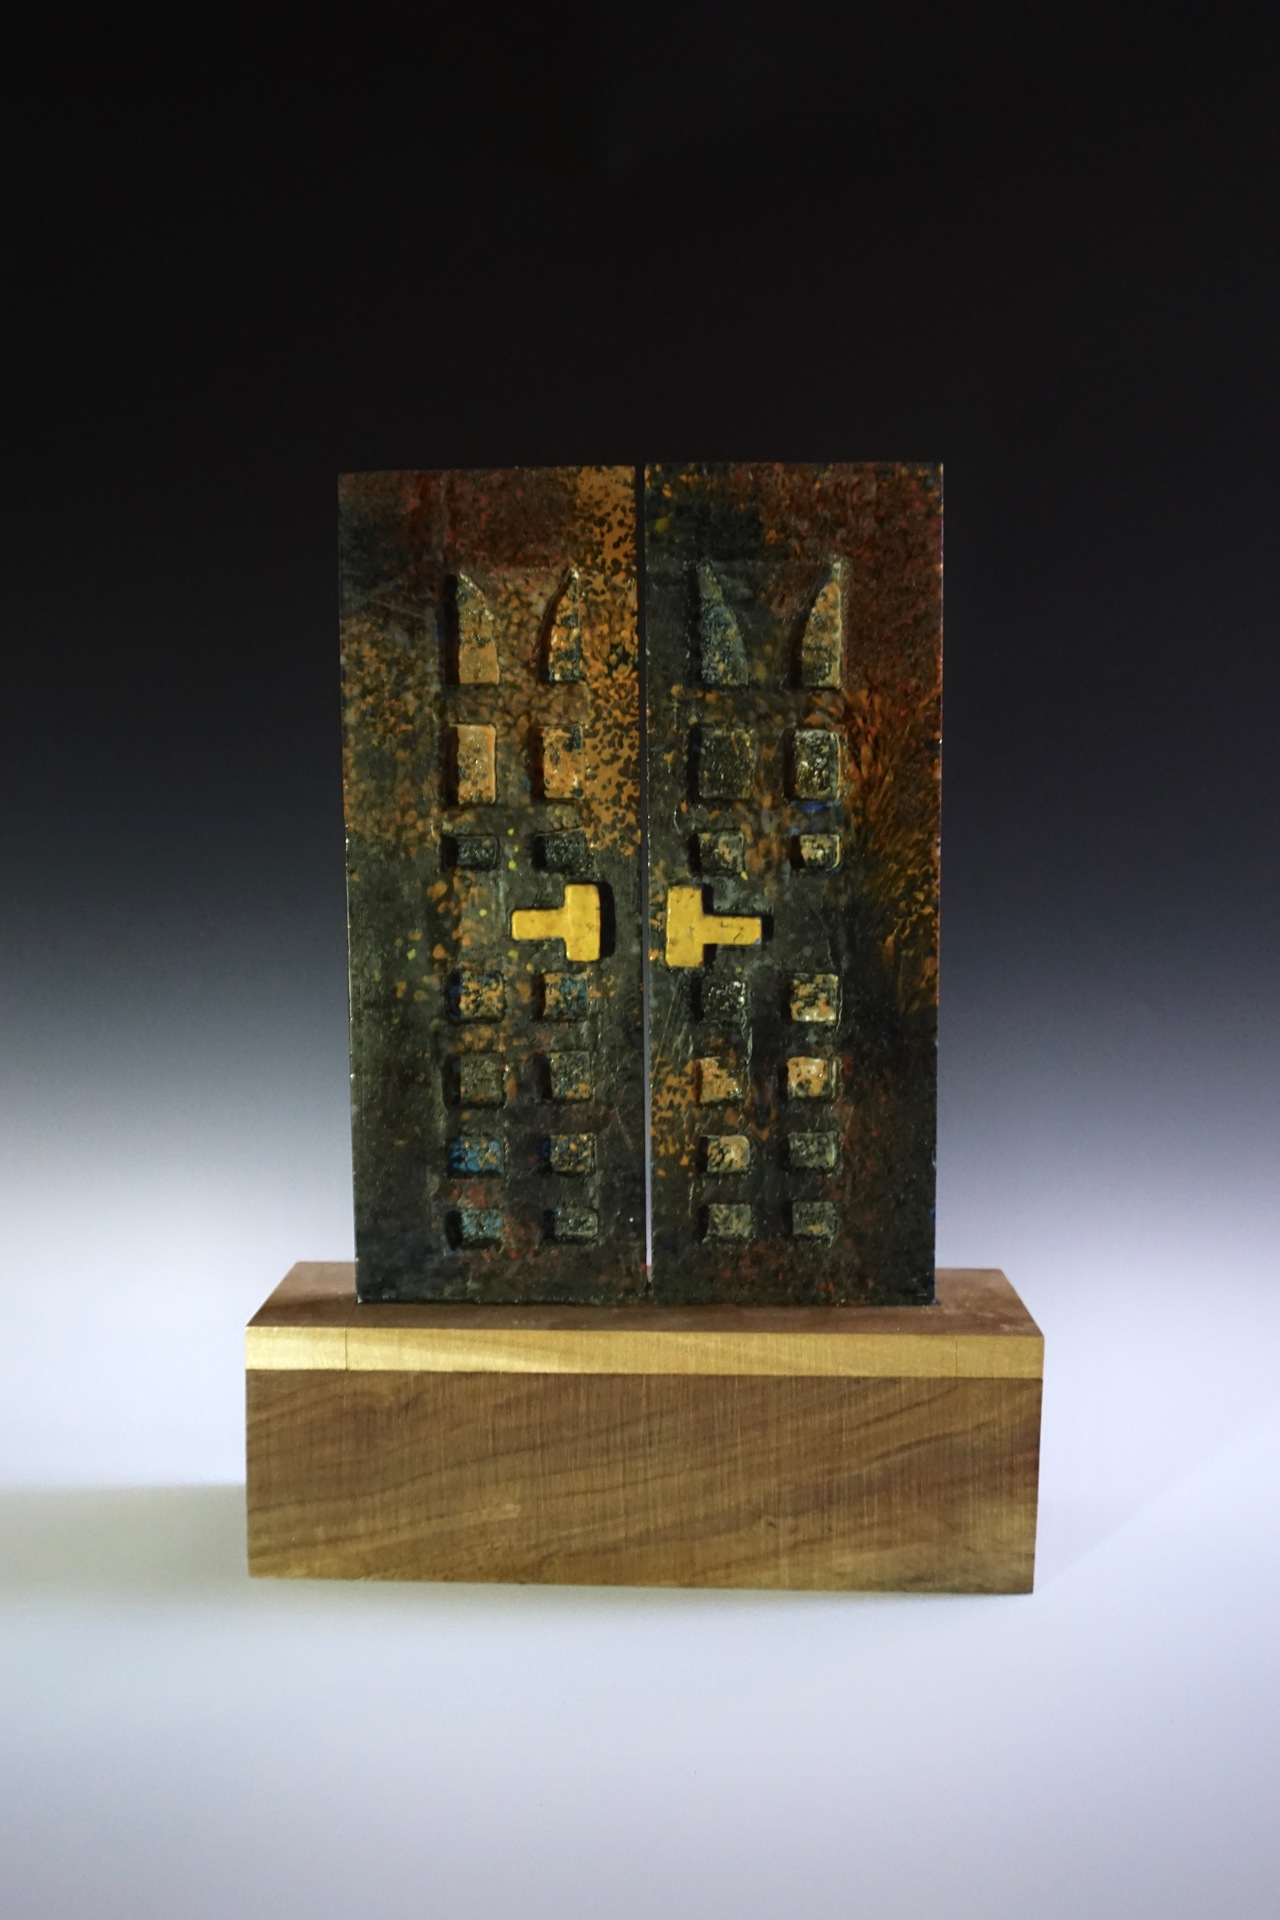 EMMETT BARNACLE  - Providence, RI   Slice of Home   cast glass and wood, $2,000